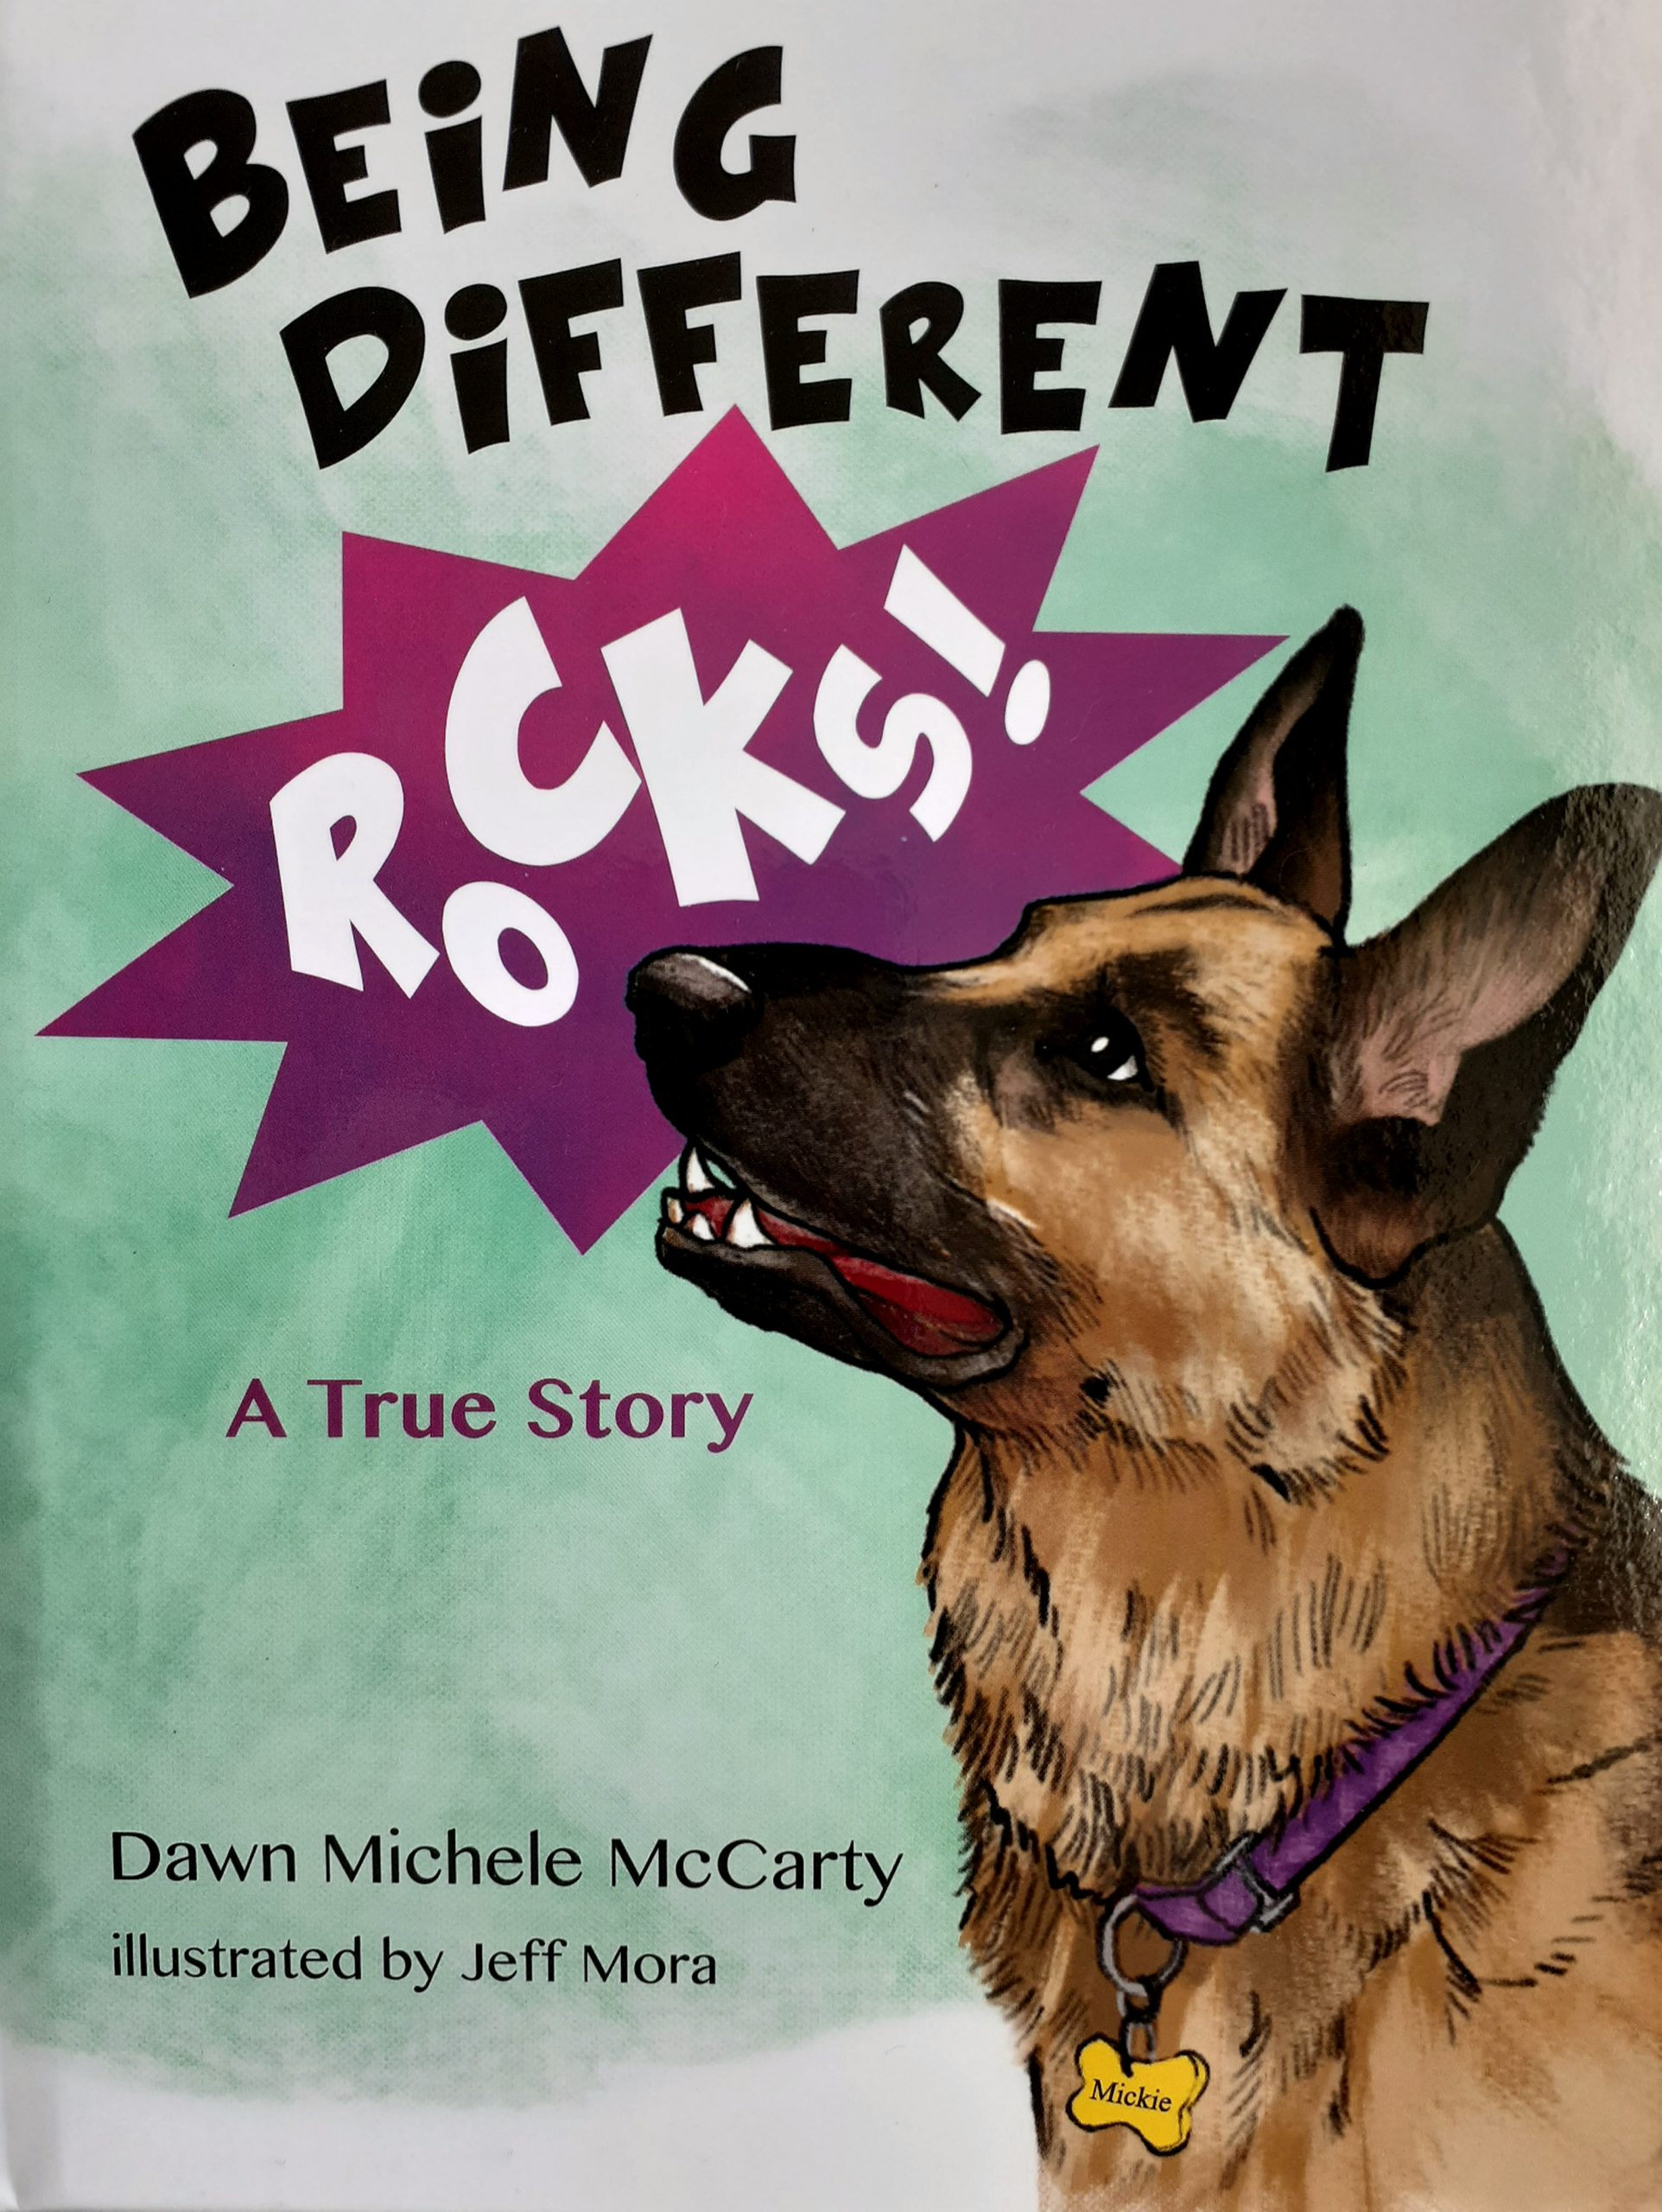 A Wonderful Children's Book: Being Different Rocks!